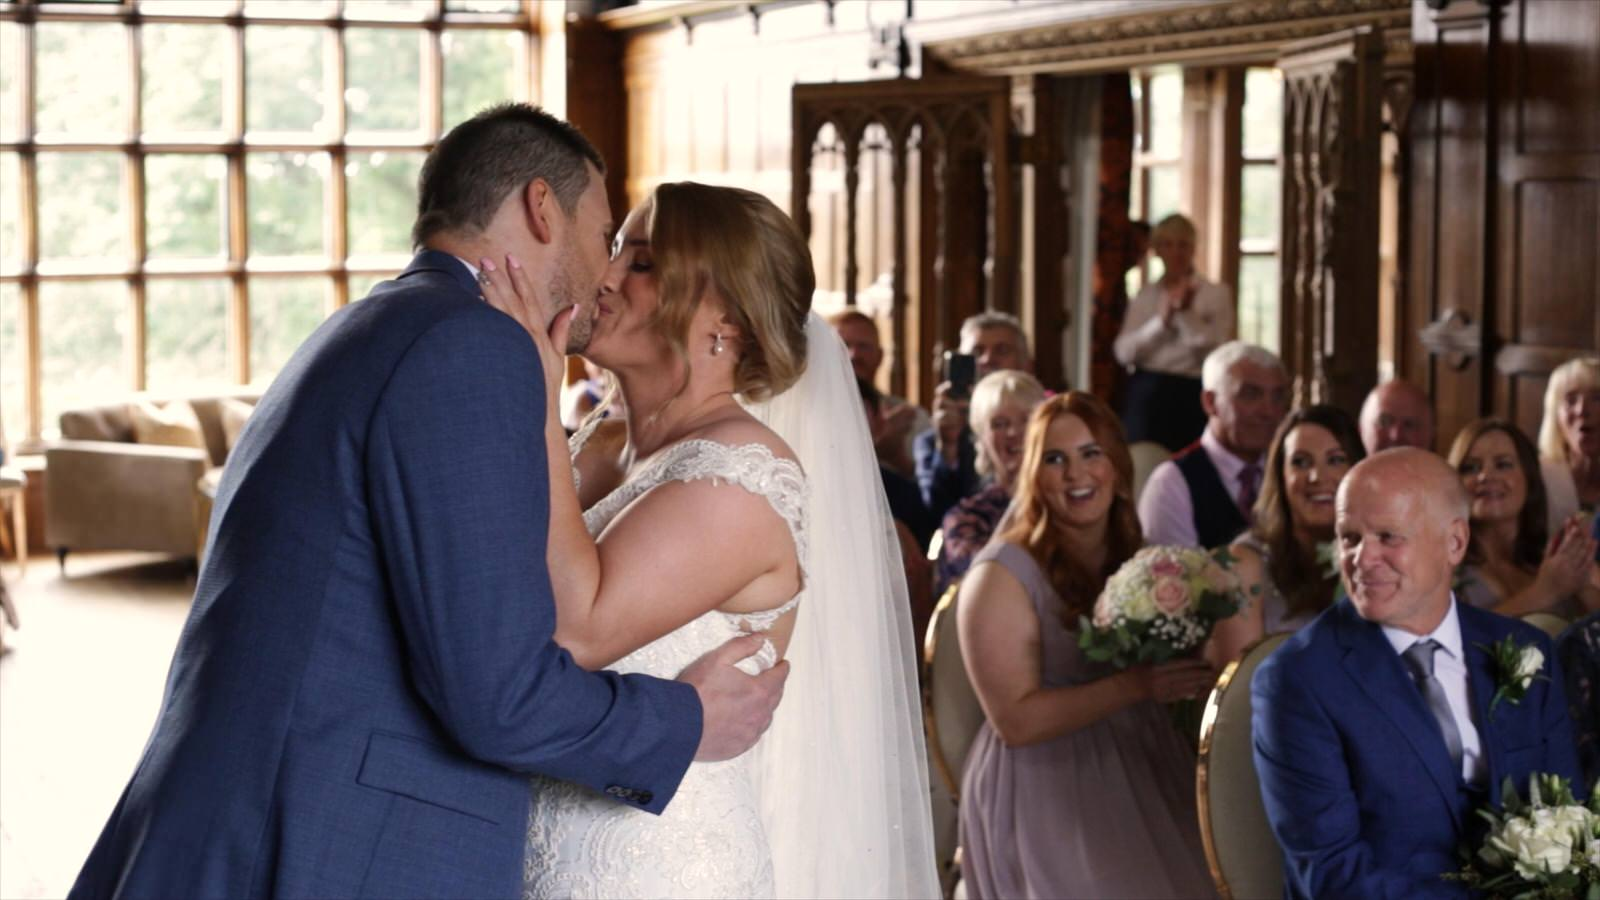 first kiss during wedding ceremony at Hillbark hotel